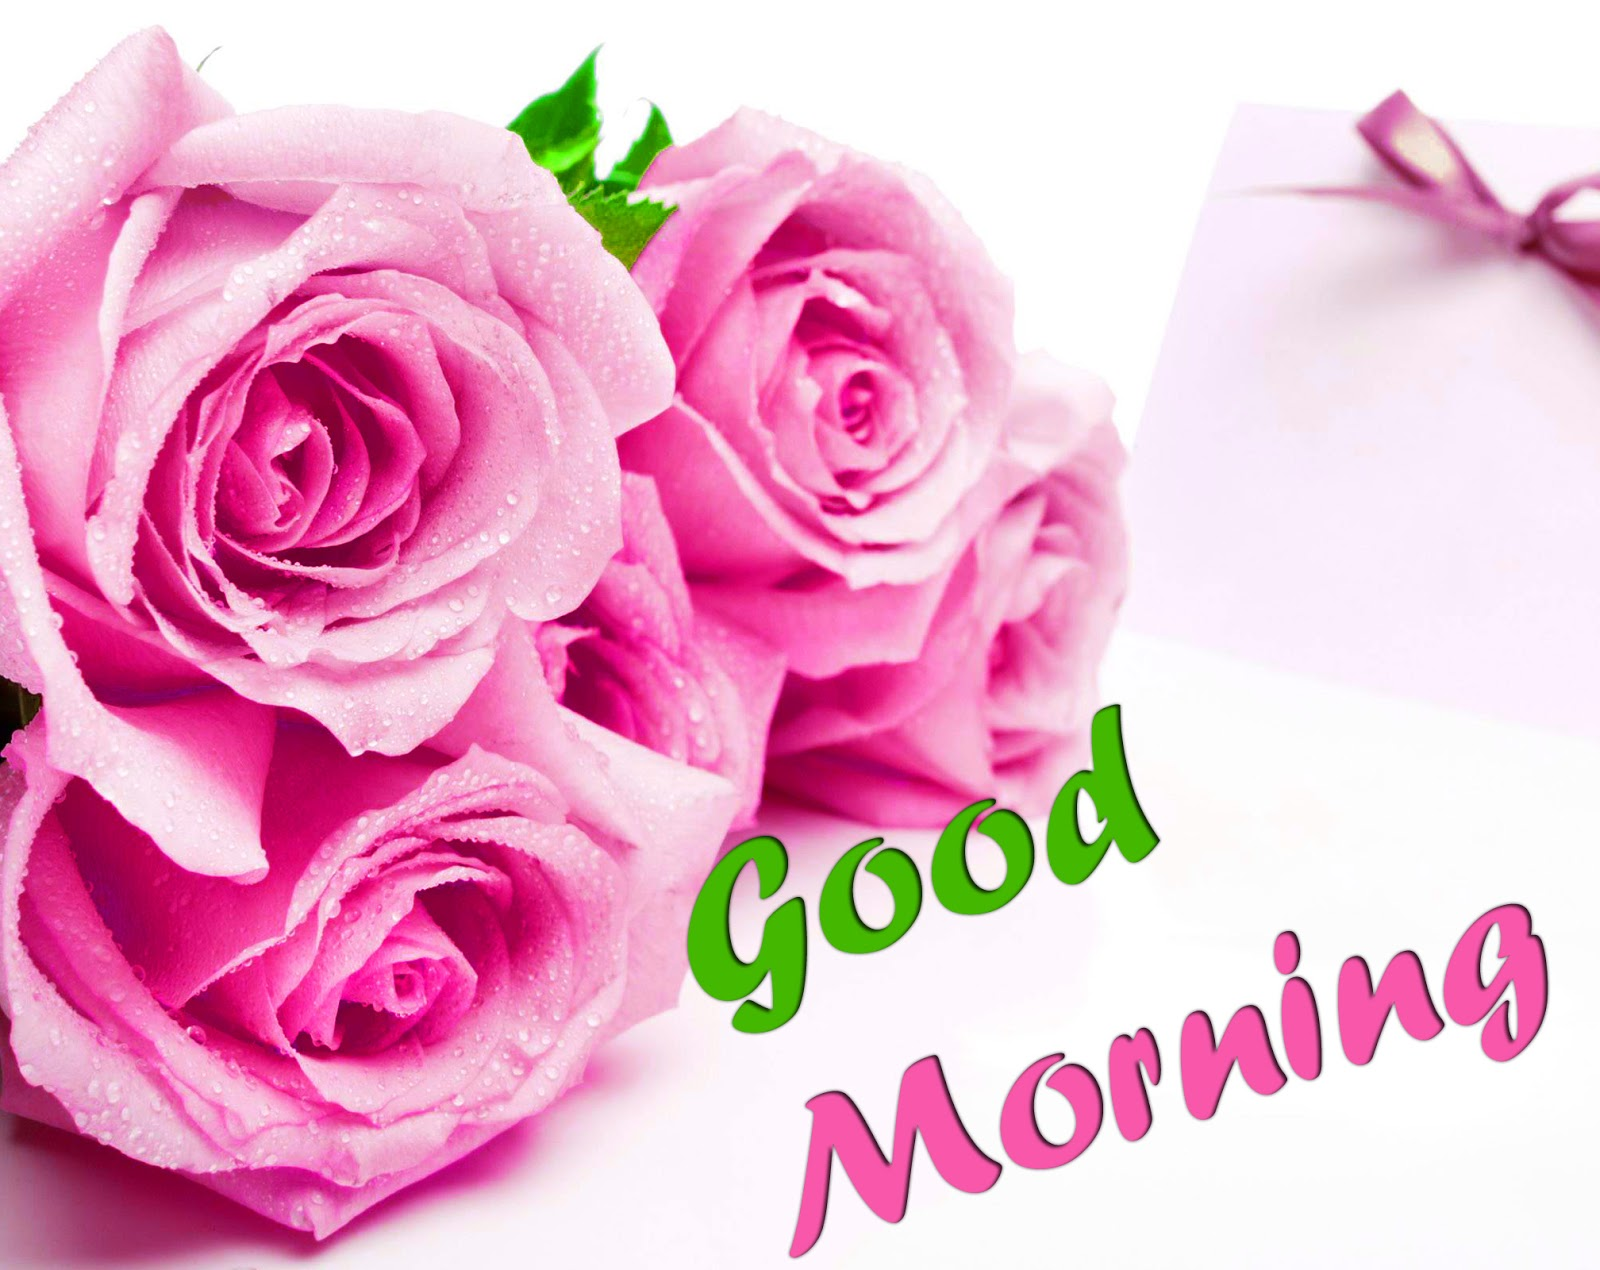 good morning images with rose flowers for whatsapp